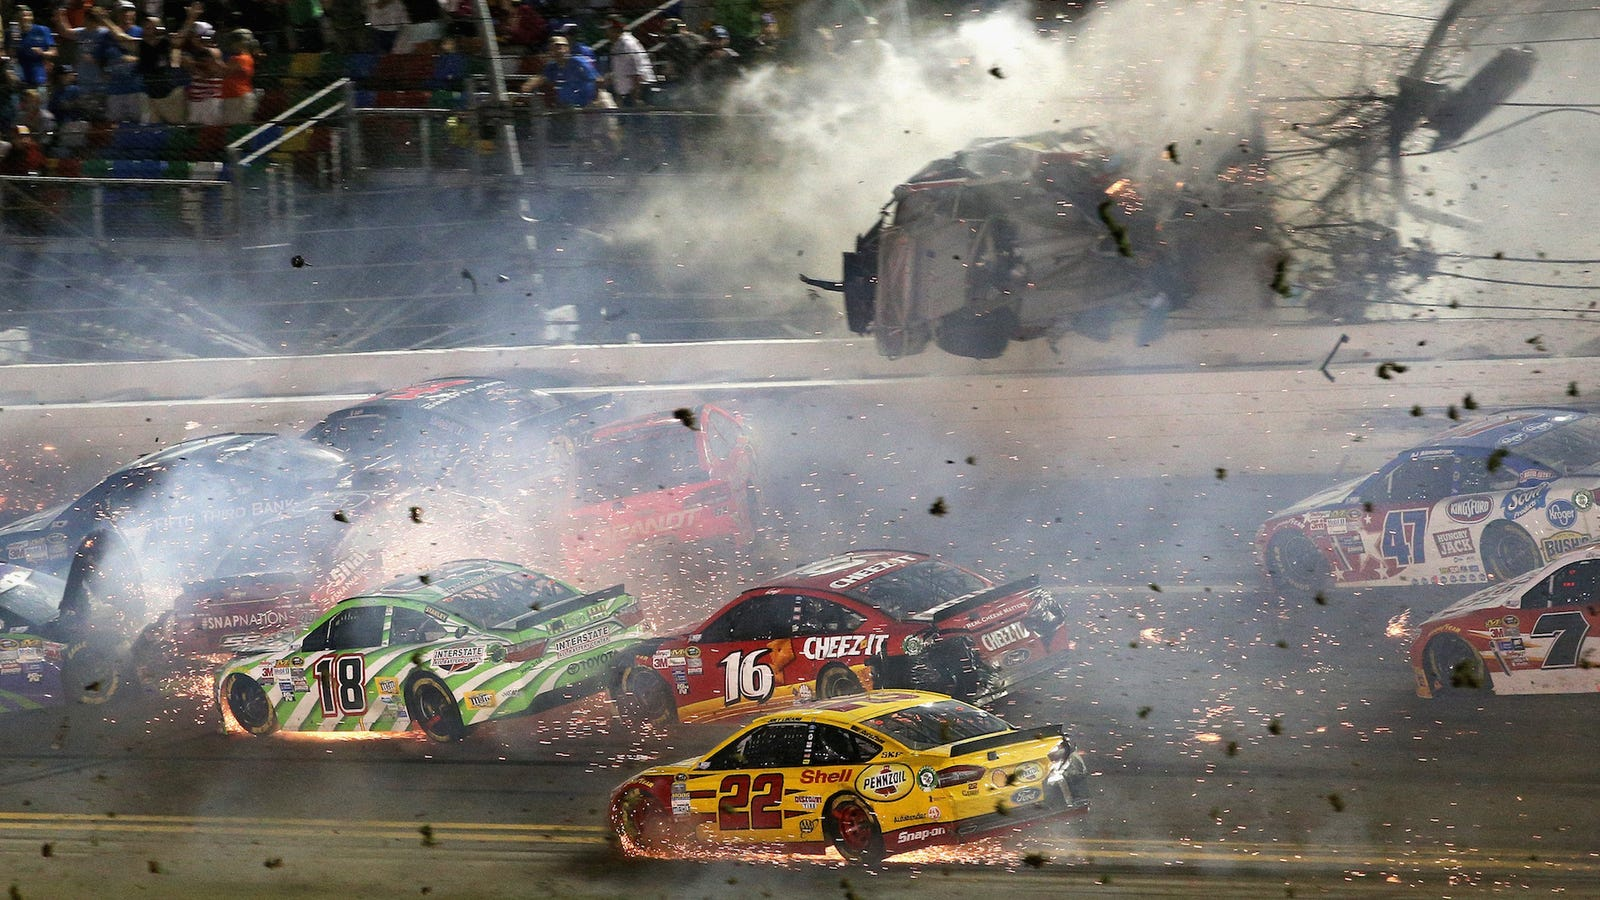 People Are Still Suing Over Injuries From That Nightmare ...